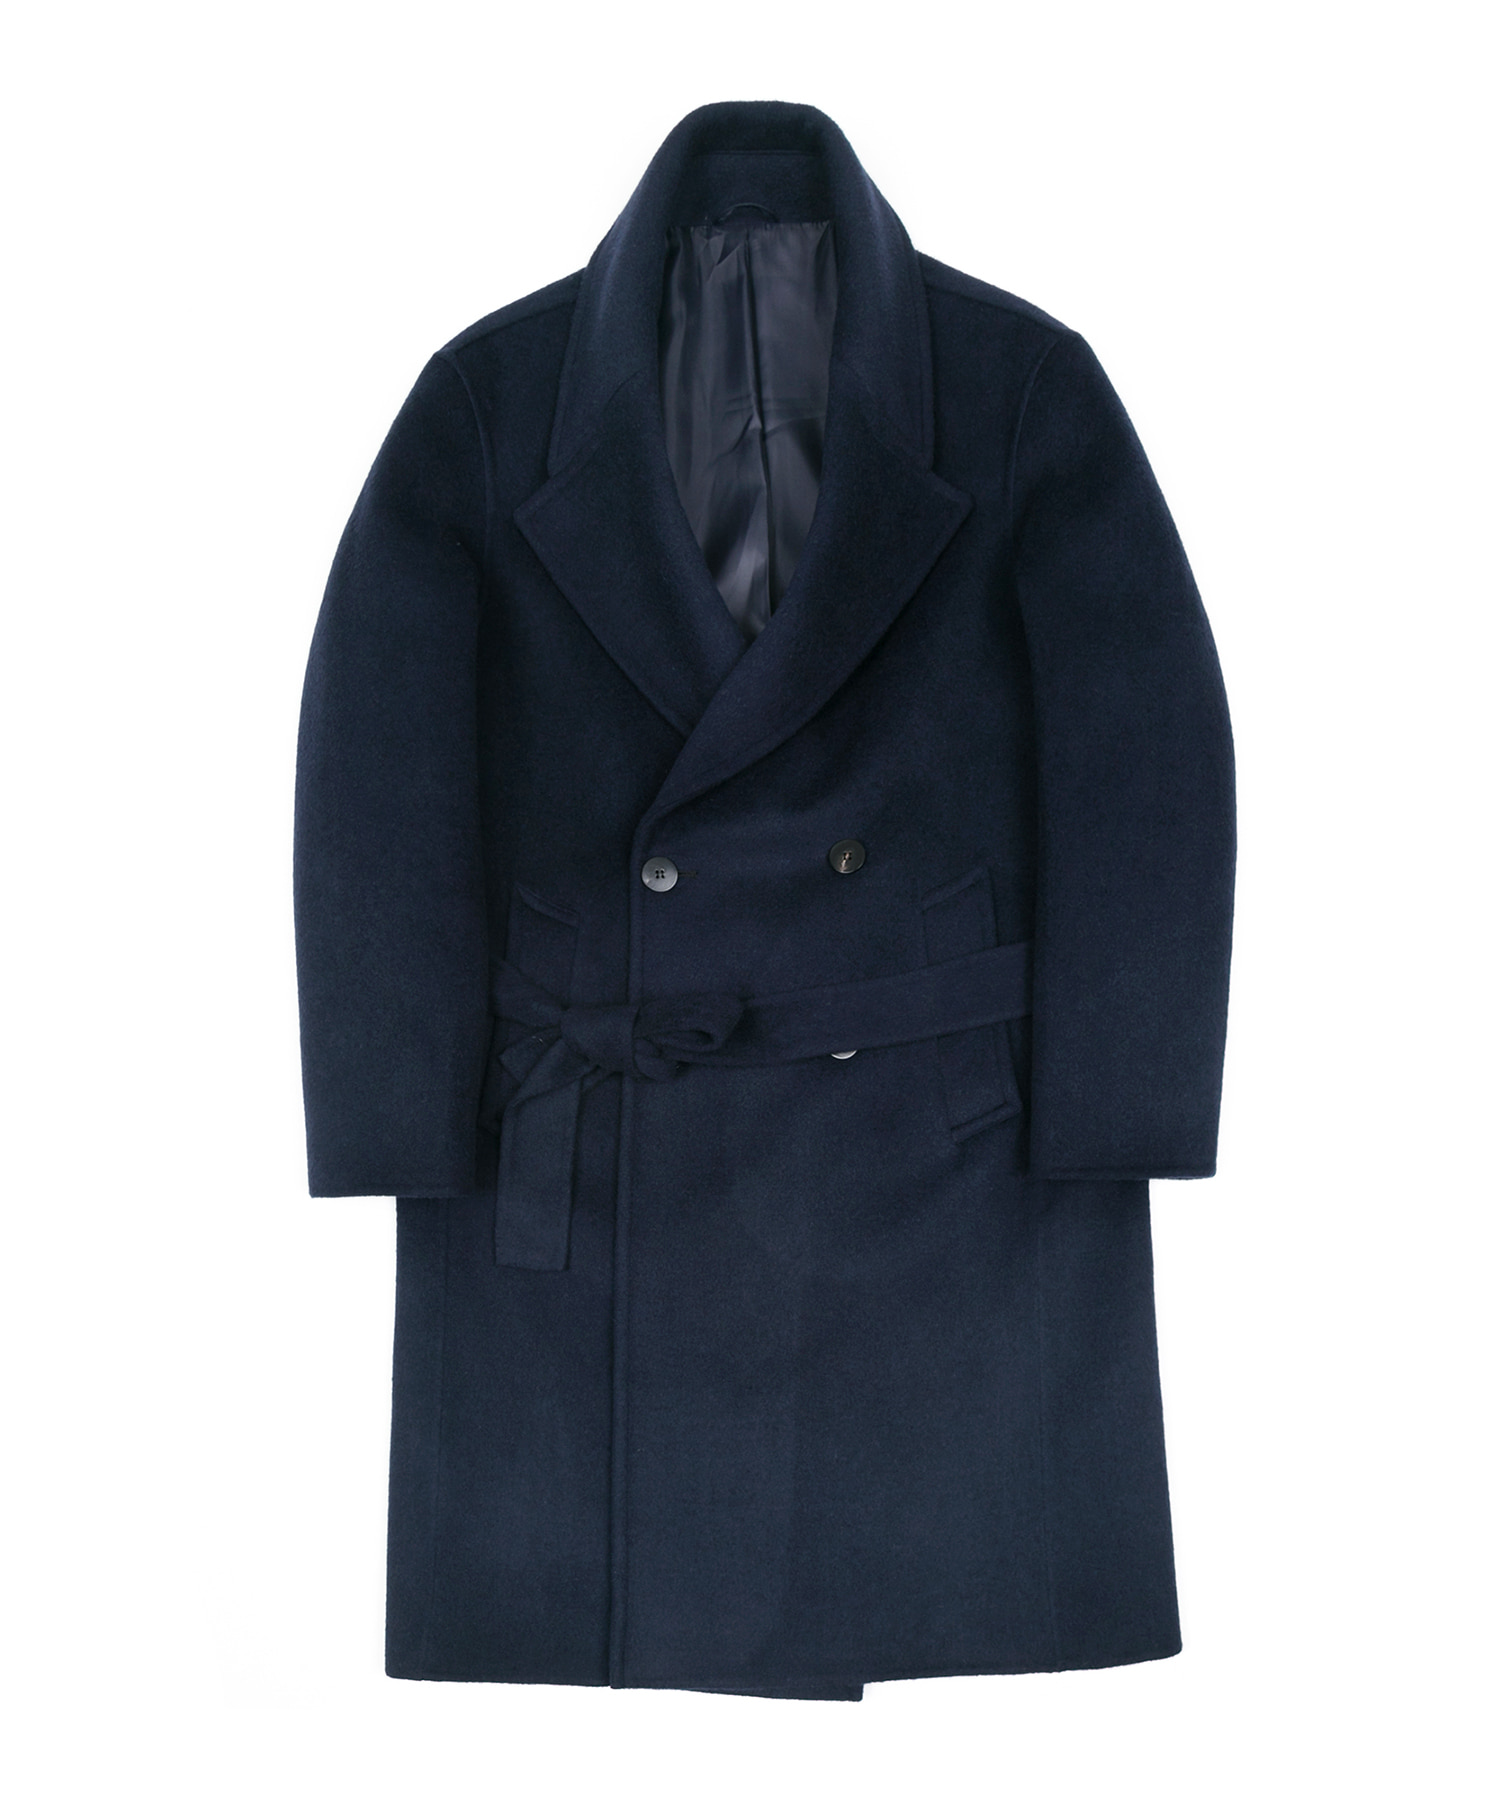 HANDMADE WOOL BREND BELTED DOUBLE COAT - NAVY